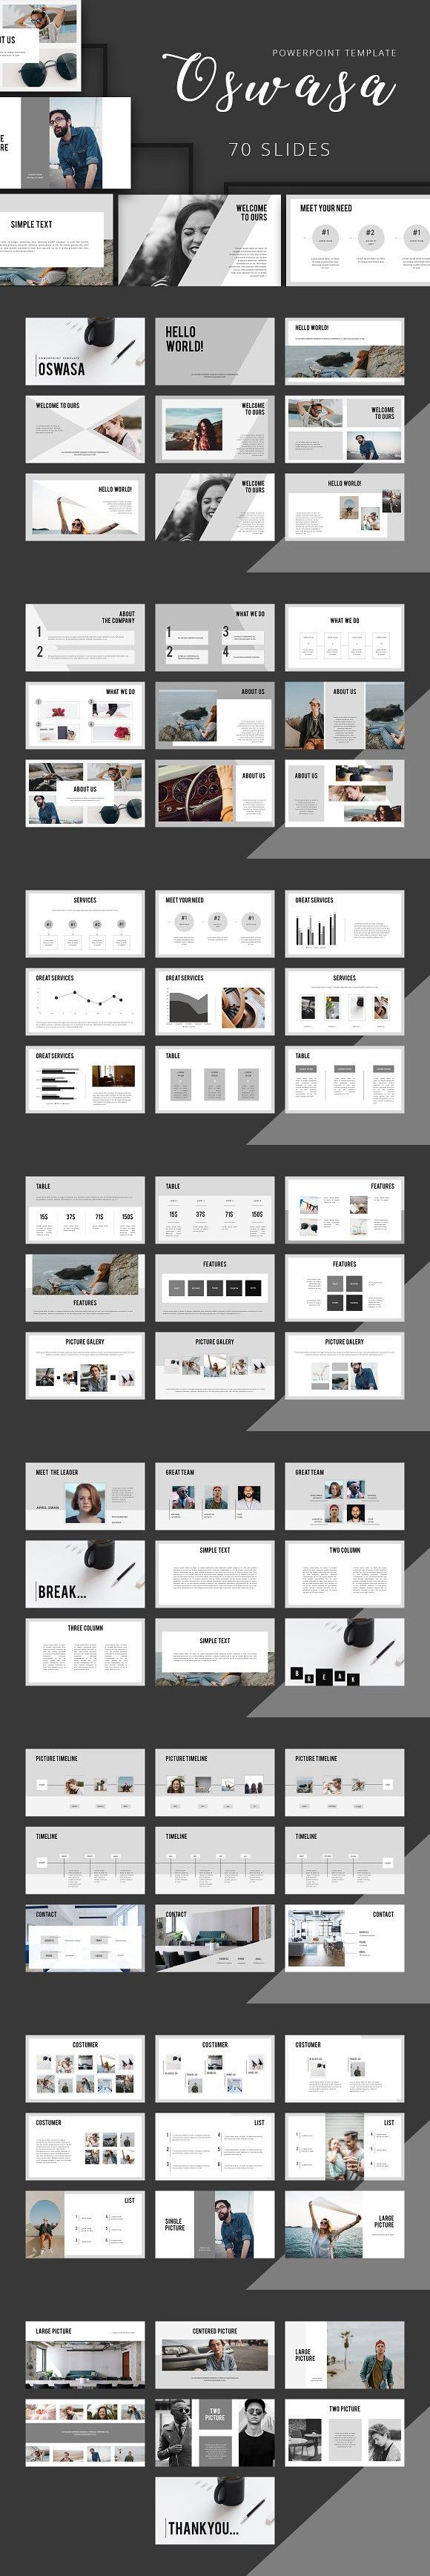 OSWASA Powerpoint Template. Presentation Templates